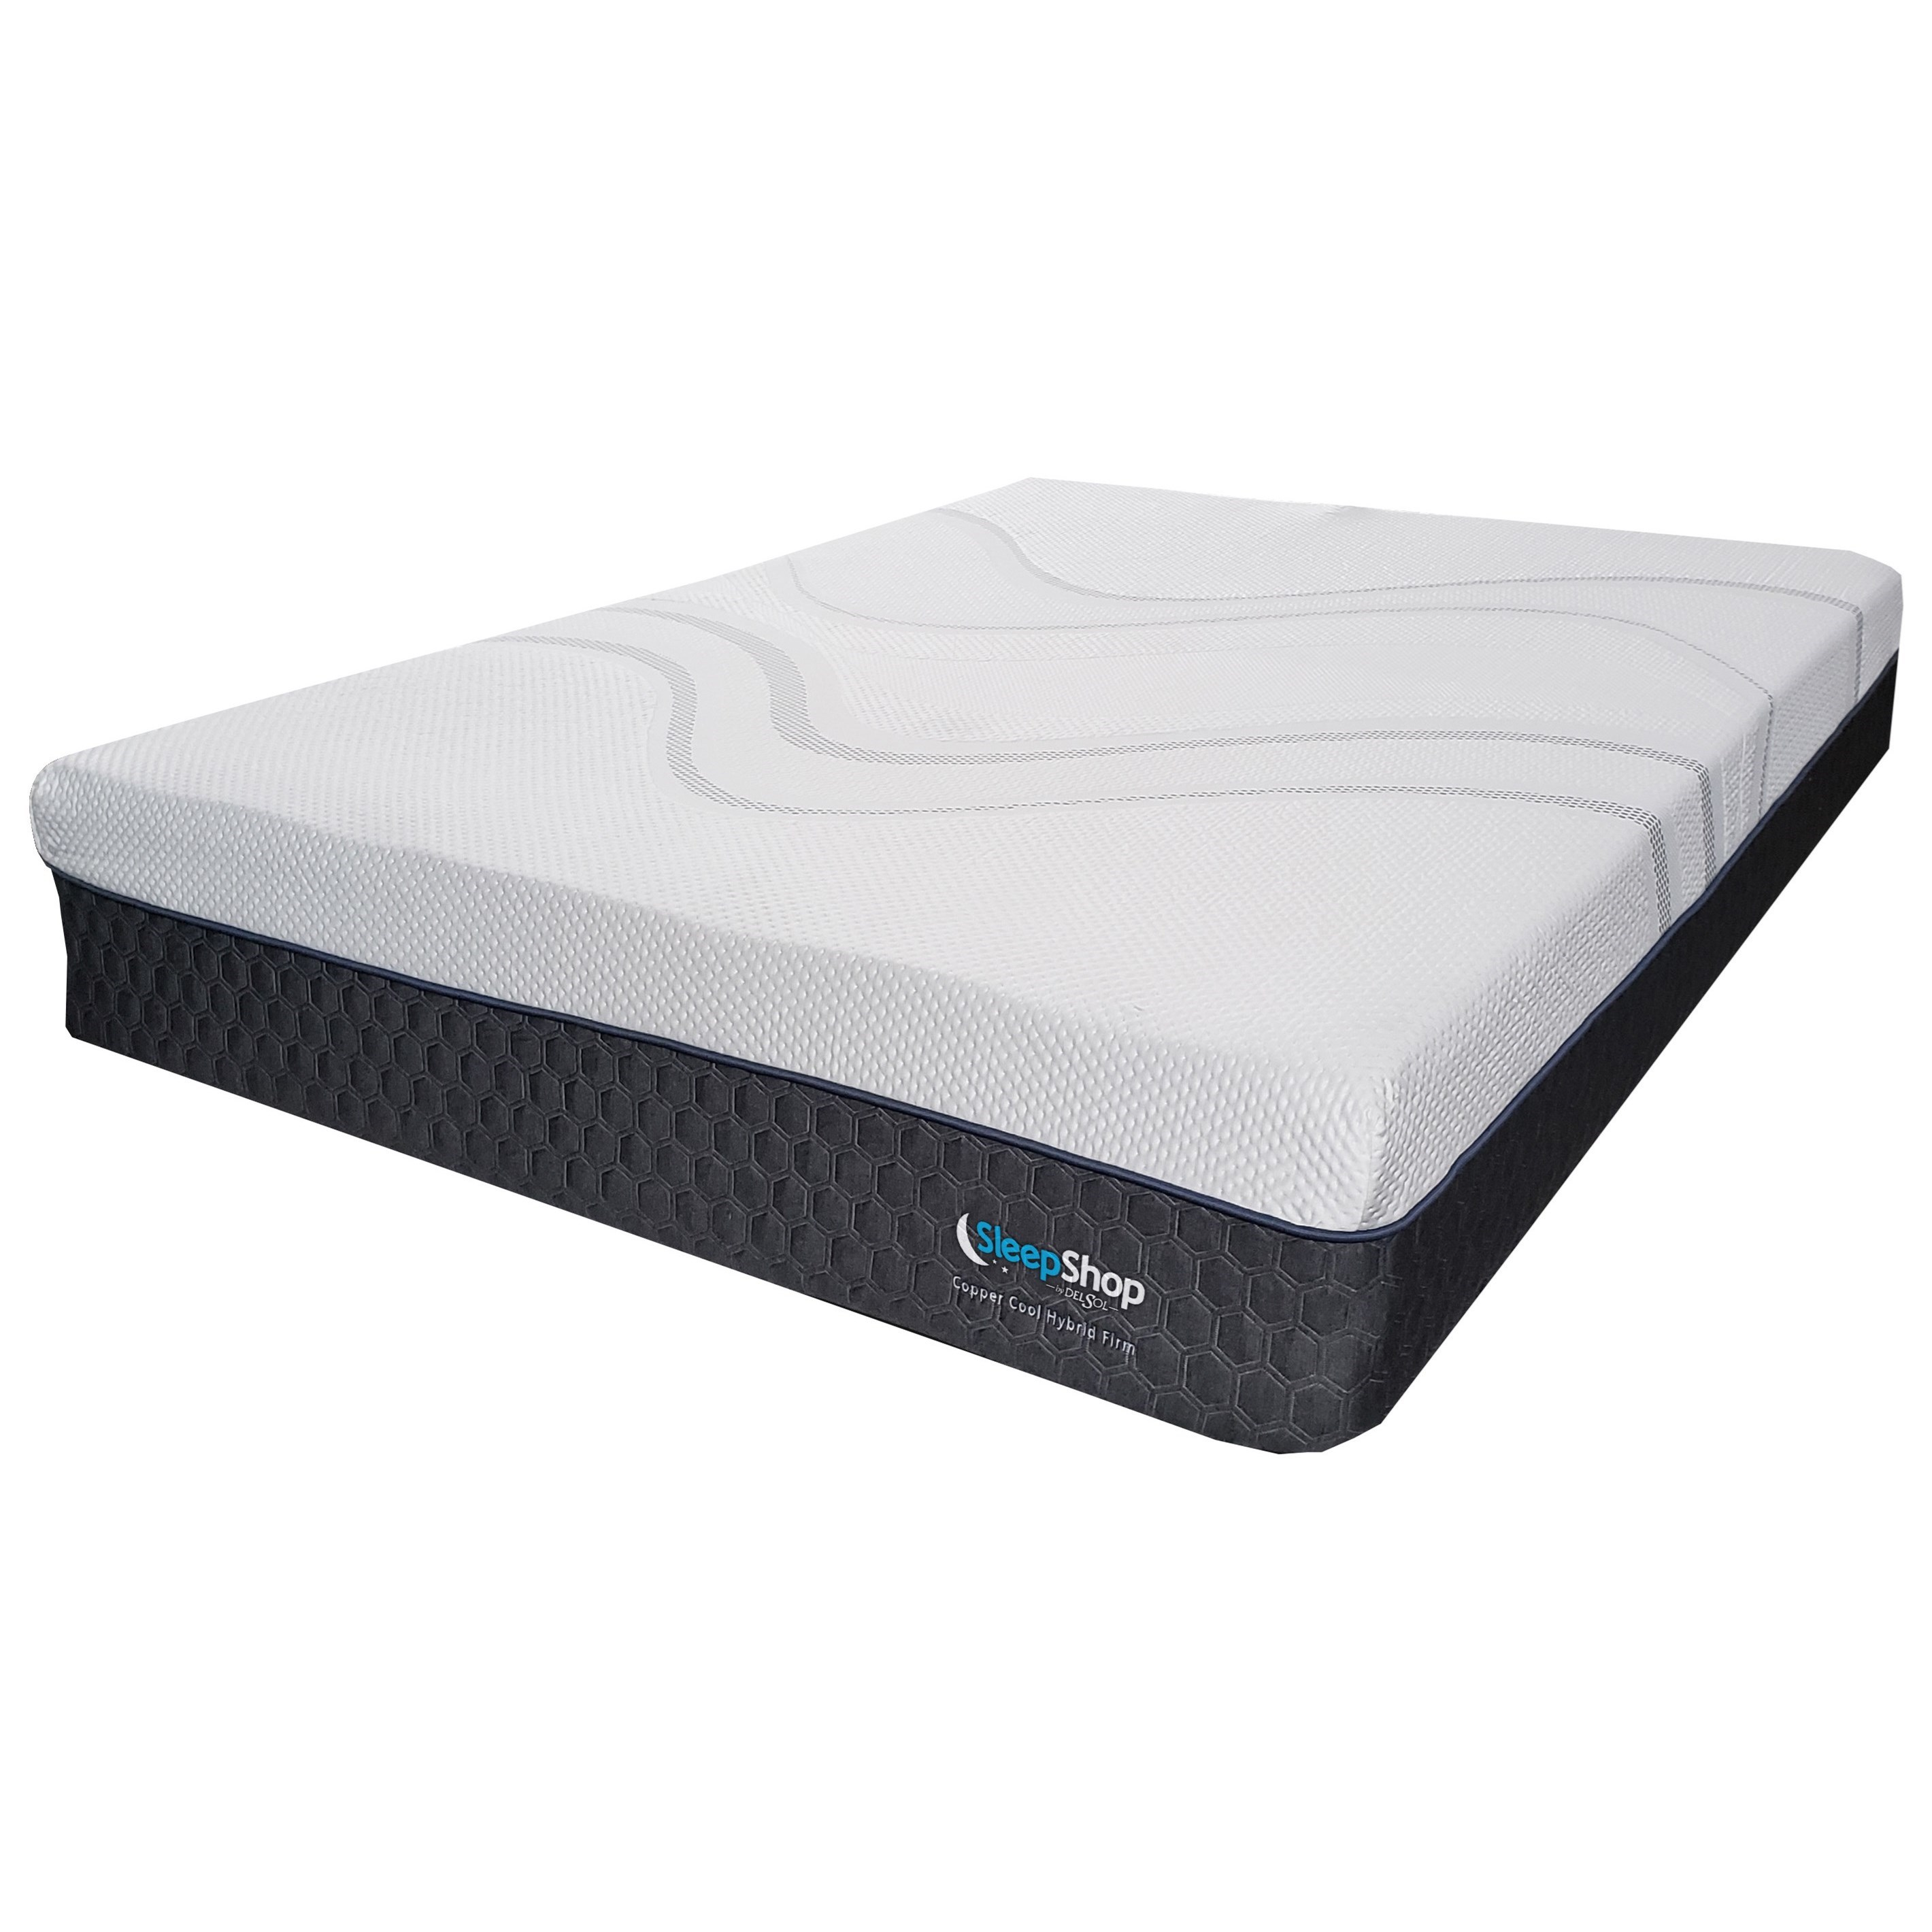 Copper Cool Hybrid Plush Queen Hybrid Cooling Plush Mattress-in-a-Box by Sleep Shop Mattress at Del Sol Furniture